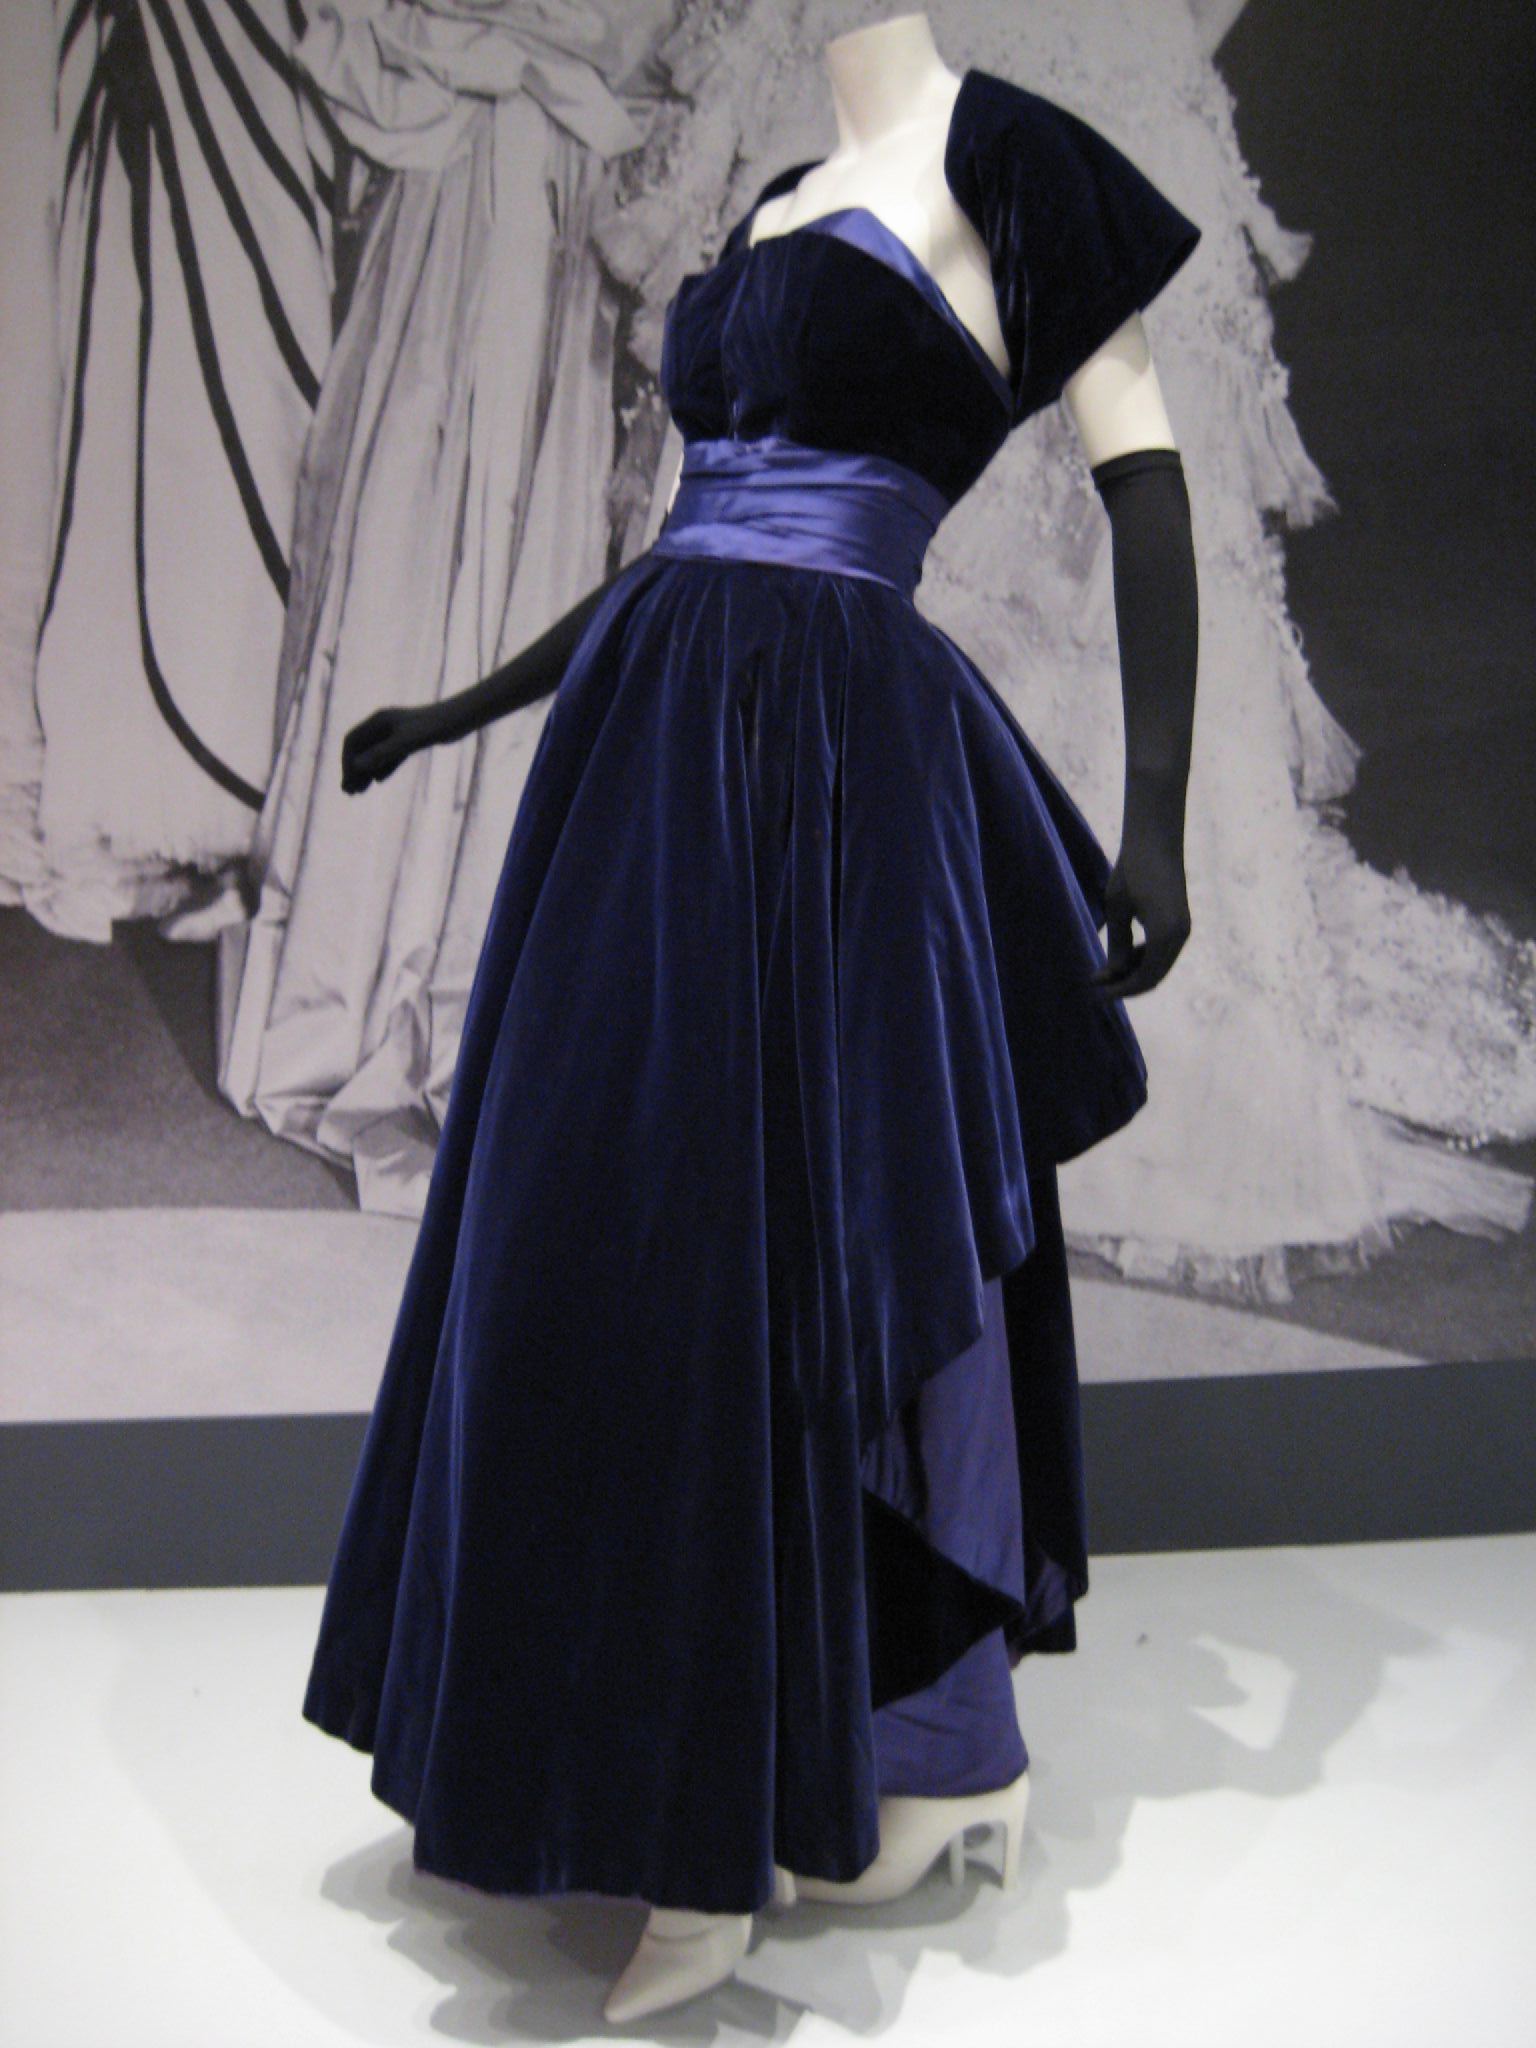 Christian Dior Dress at the Indianapolis Museum of Art